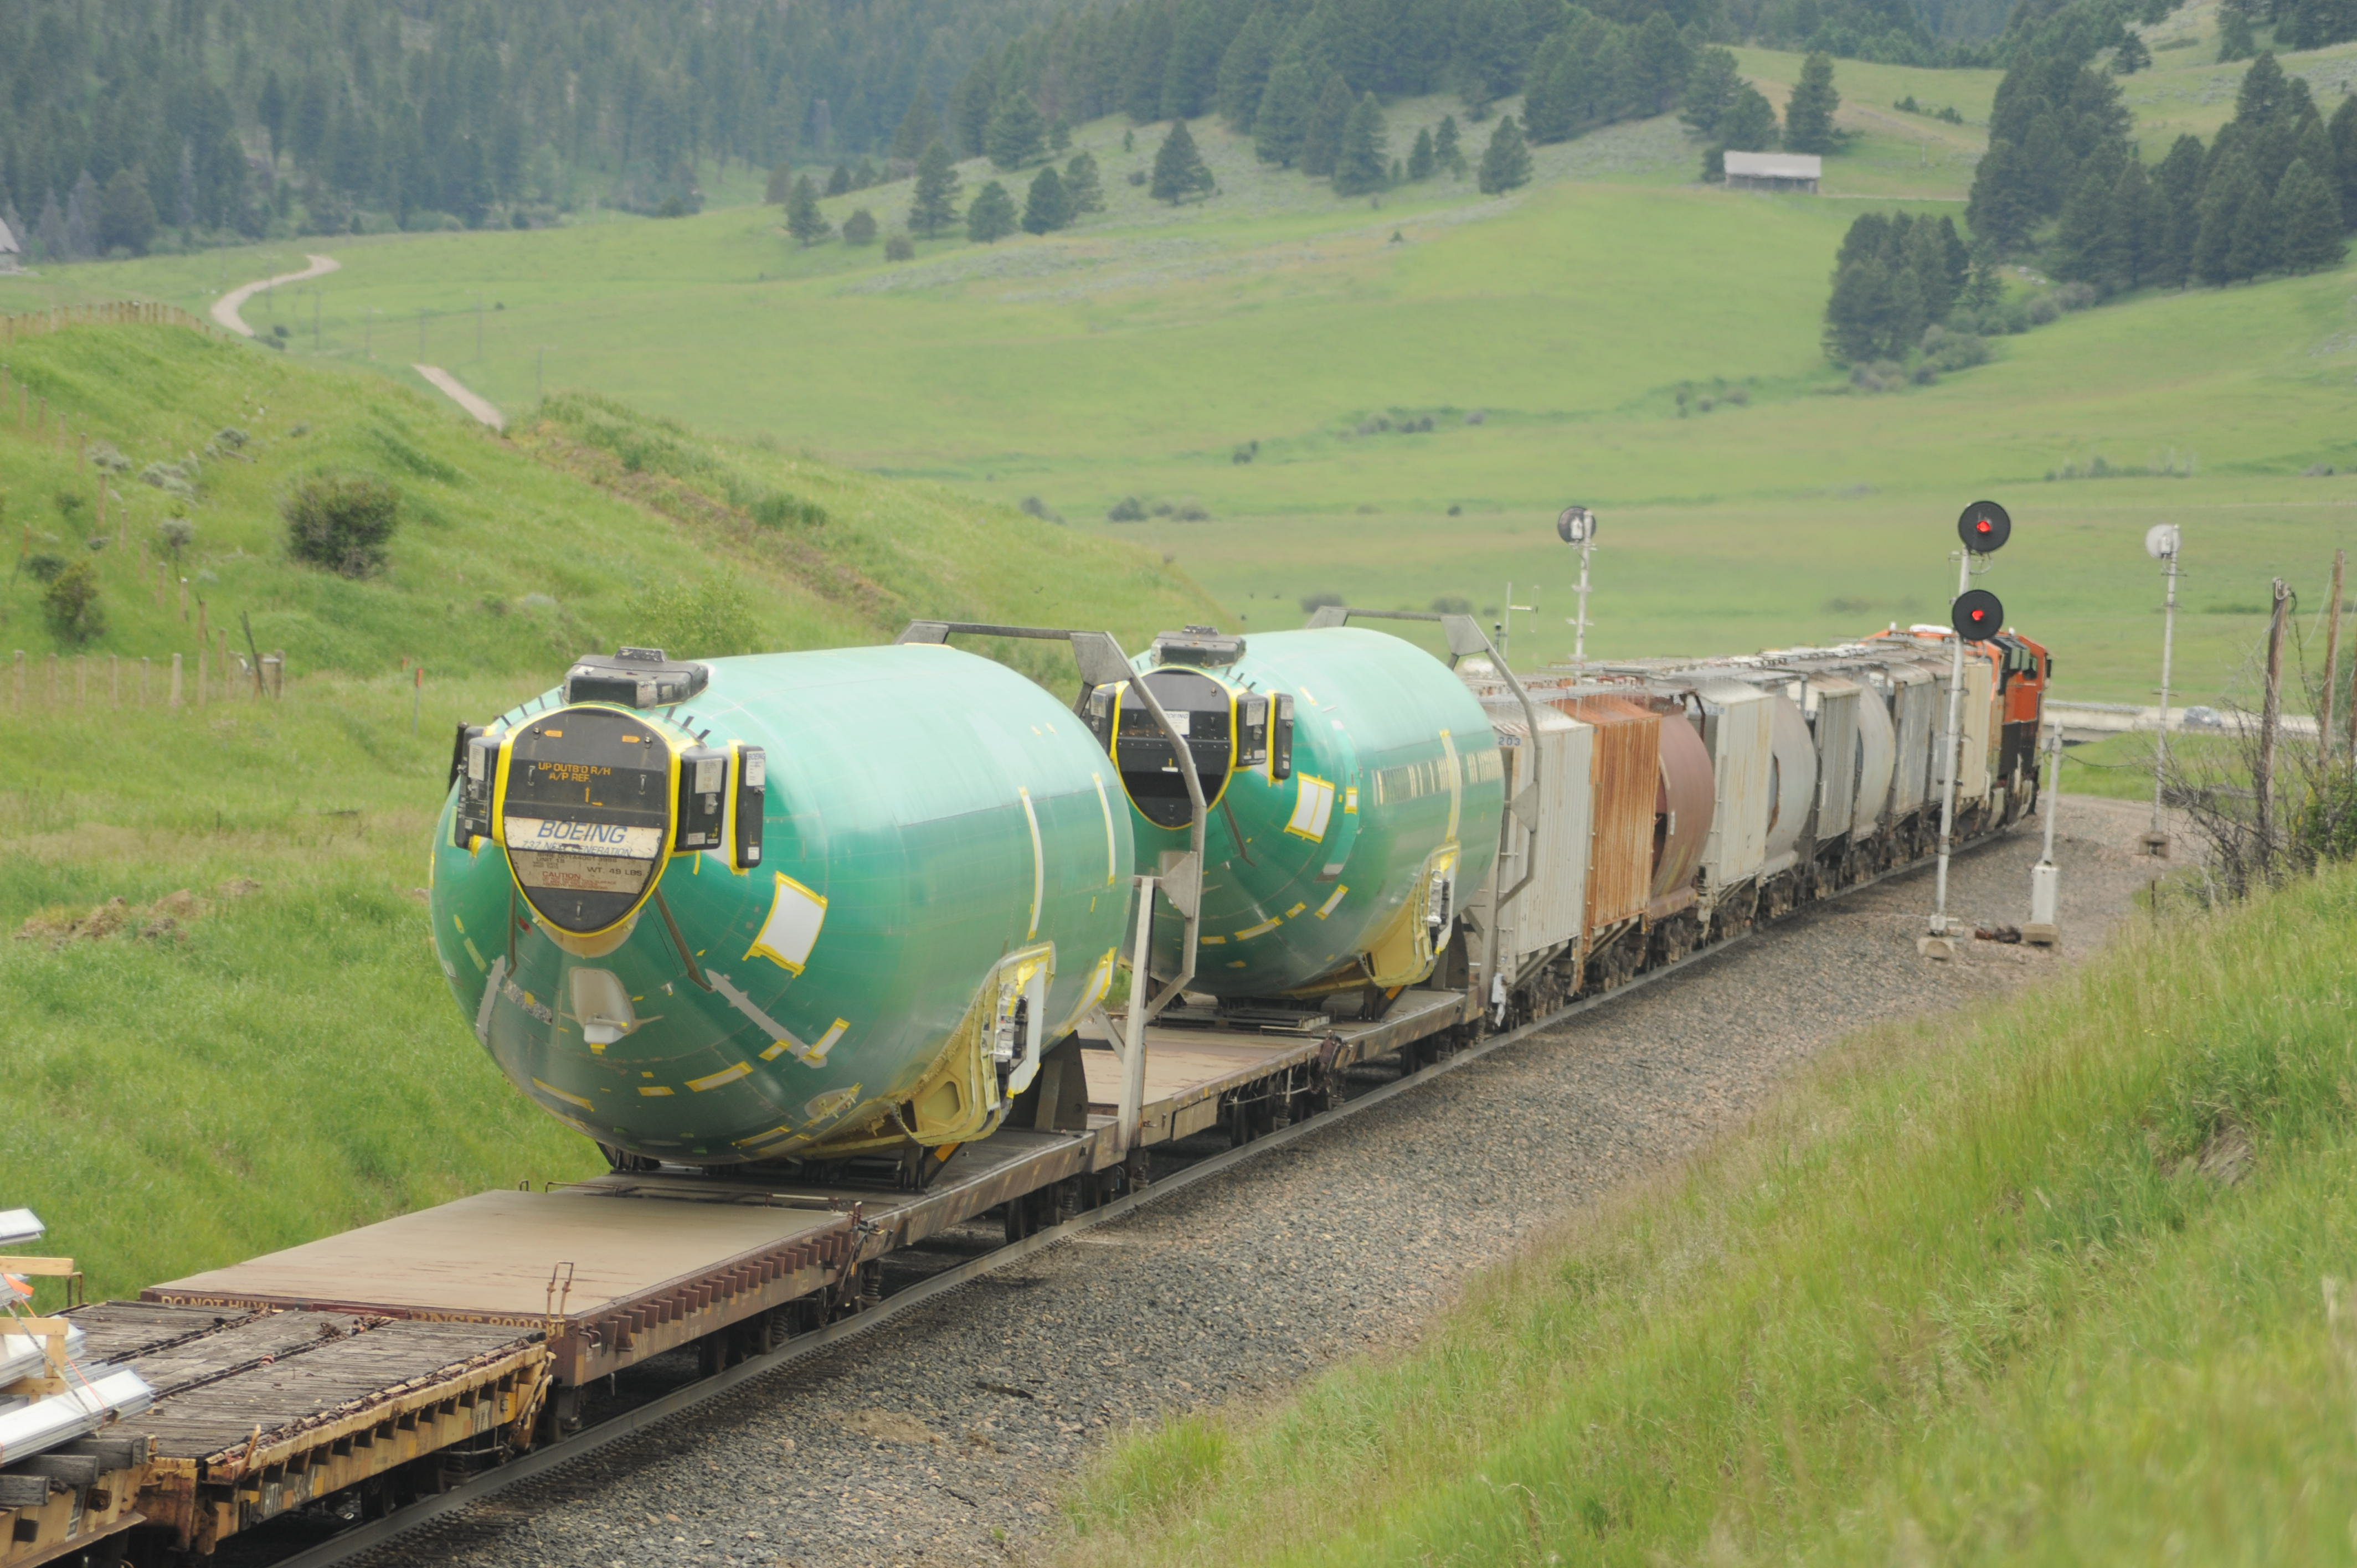 A Pair Of Boeing 737 Fuselages Head West On Mrl At Bozeman P June 20 2017 Jim Wrinn Photo